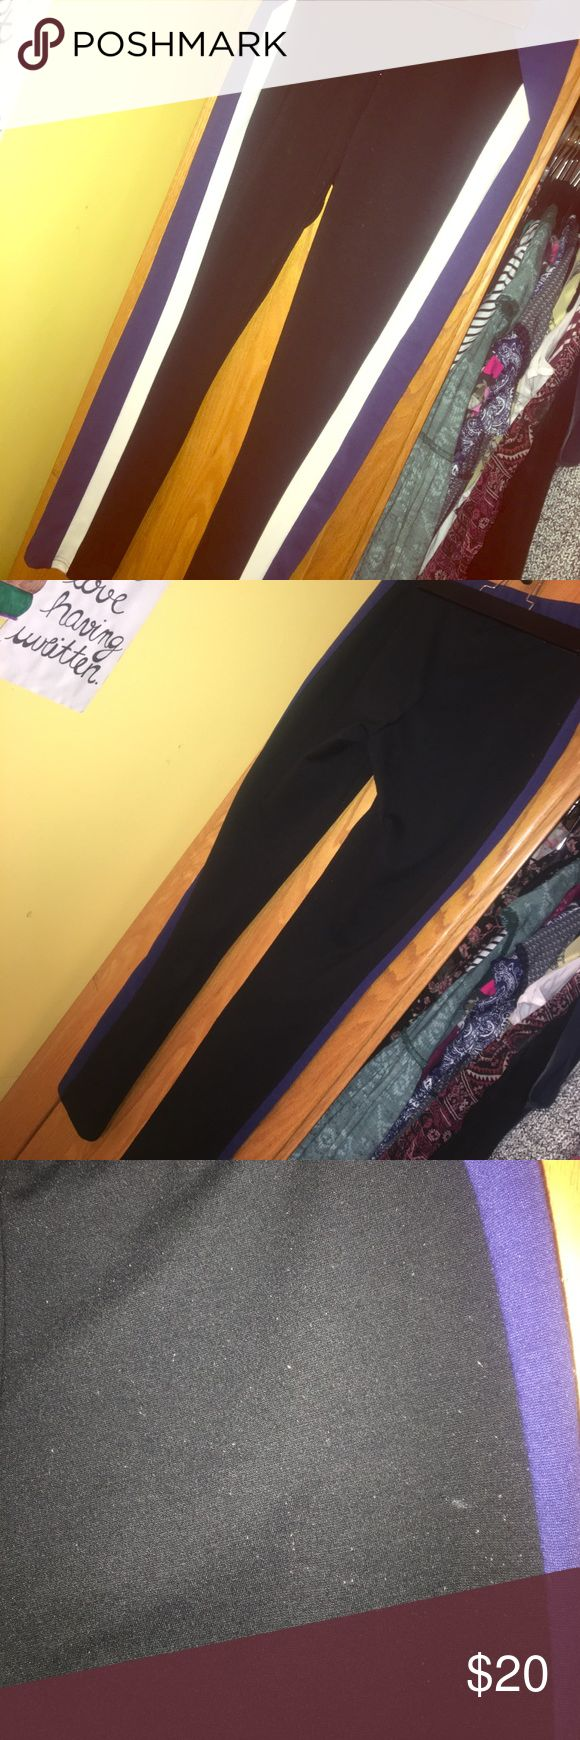 Thick black leggings with white and blue stripes These leggings are size medium from Romeo and Juliet. Very thick, won't be see through if you bend over. They have some pilling. Romeo & Juliet Couture Pants Leggings